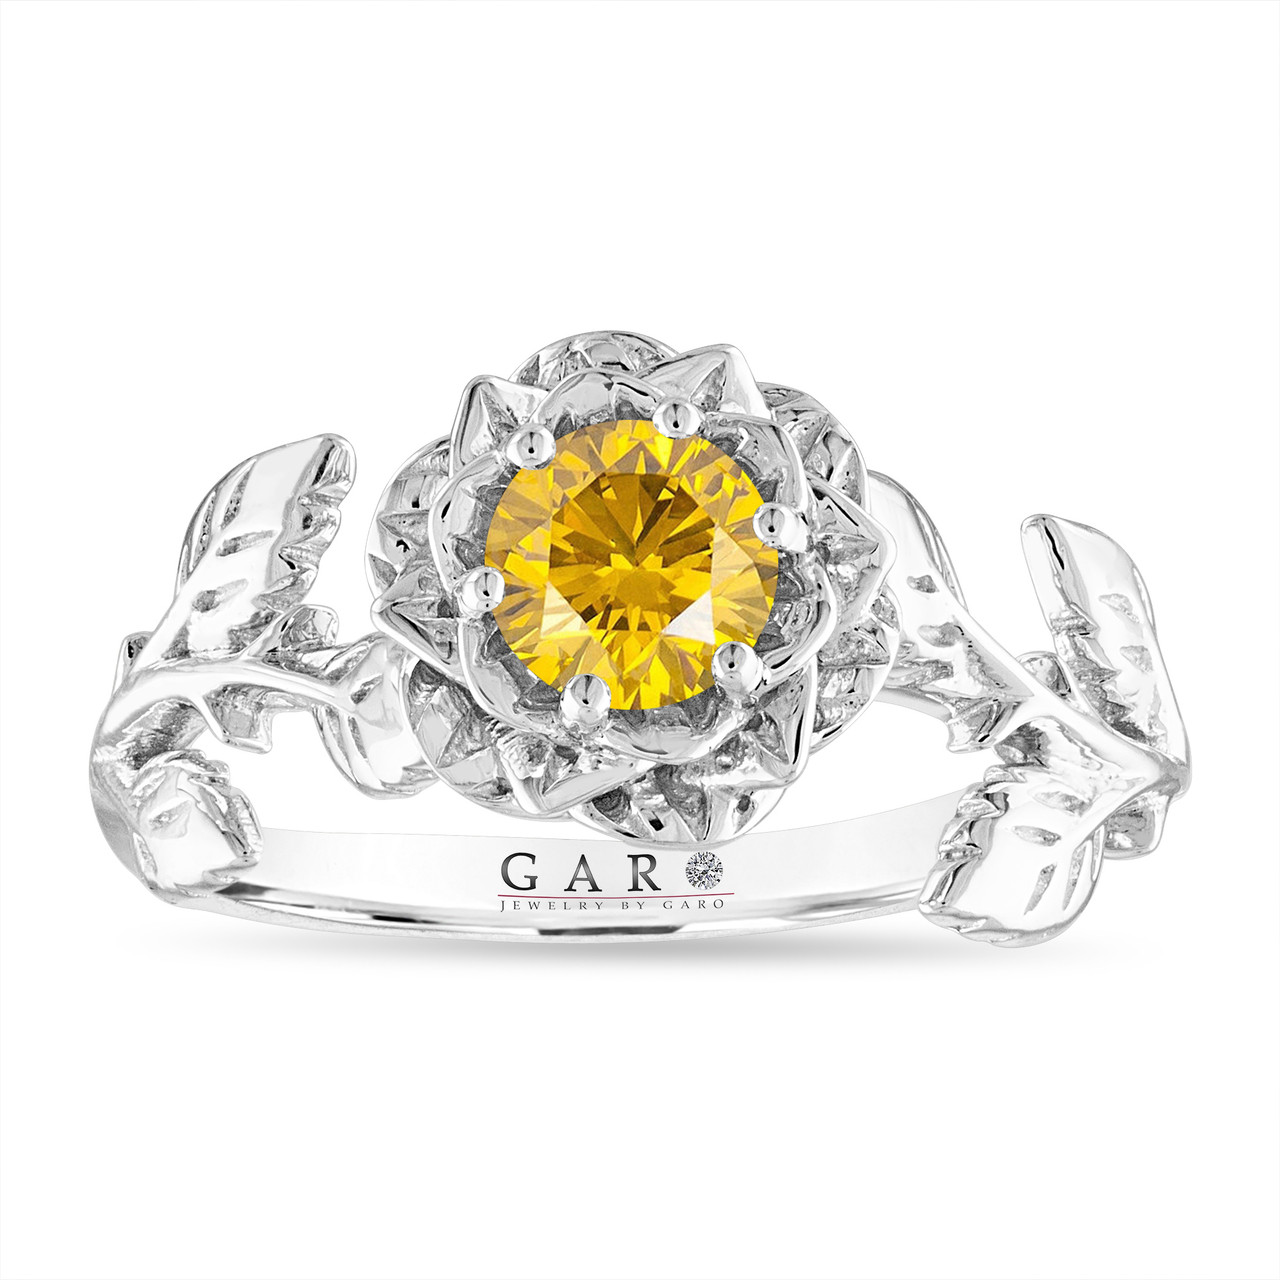 Fancy Yellow Diamond Floral Engagement Ring Rose Floral Solitaire Ring Unique Vs1 0 50 Carat 14k White Gold Certified